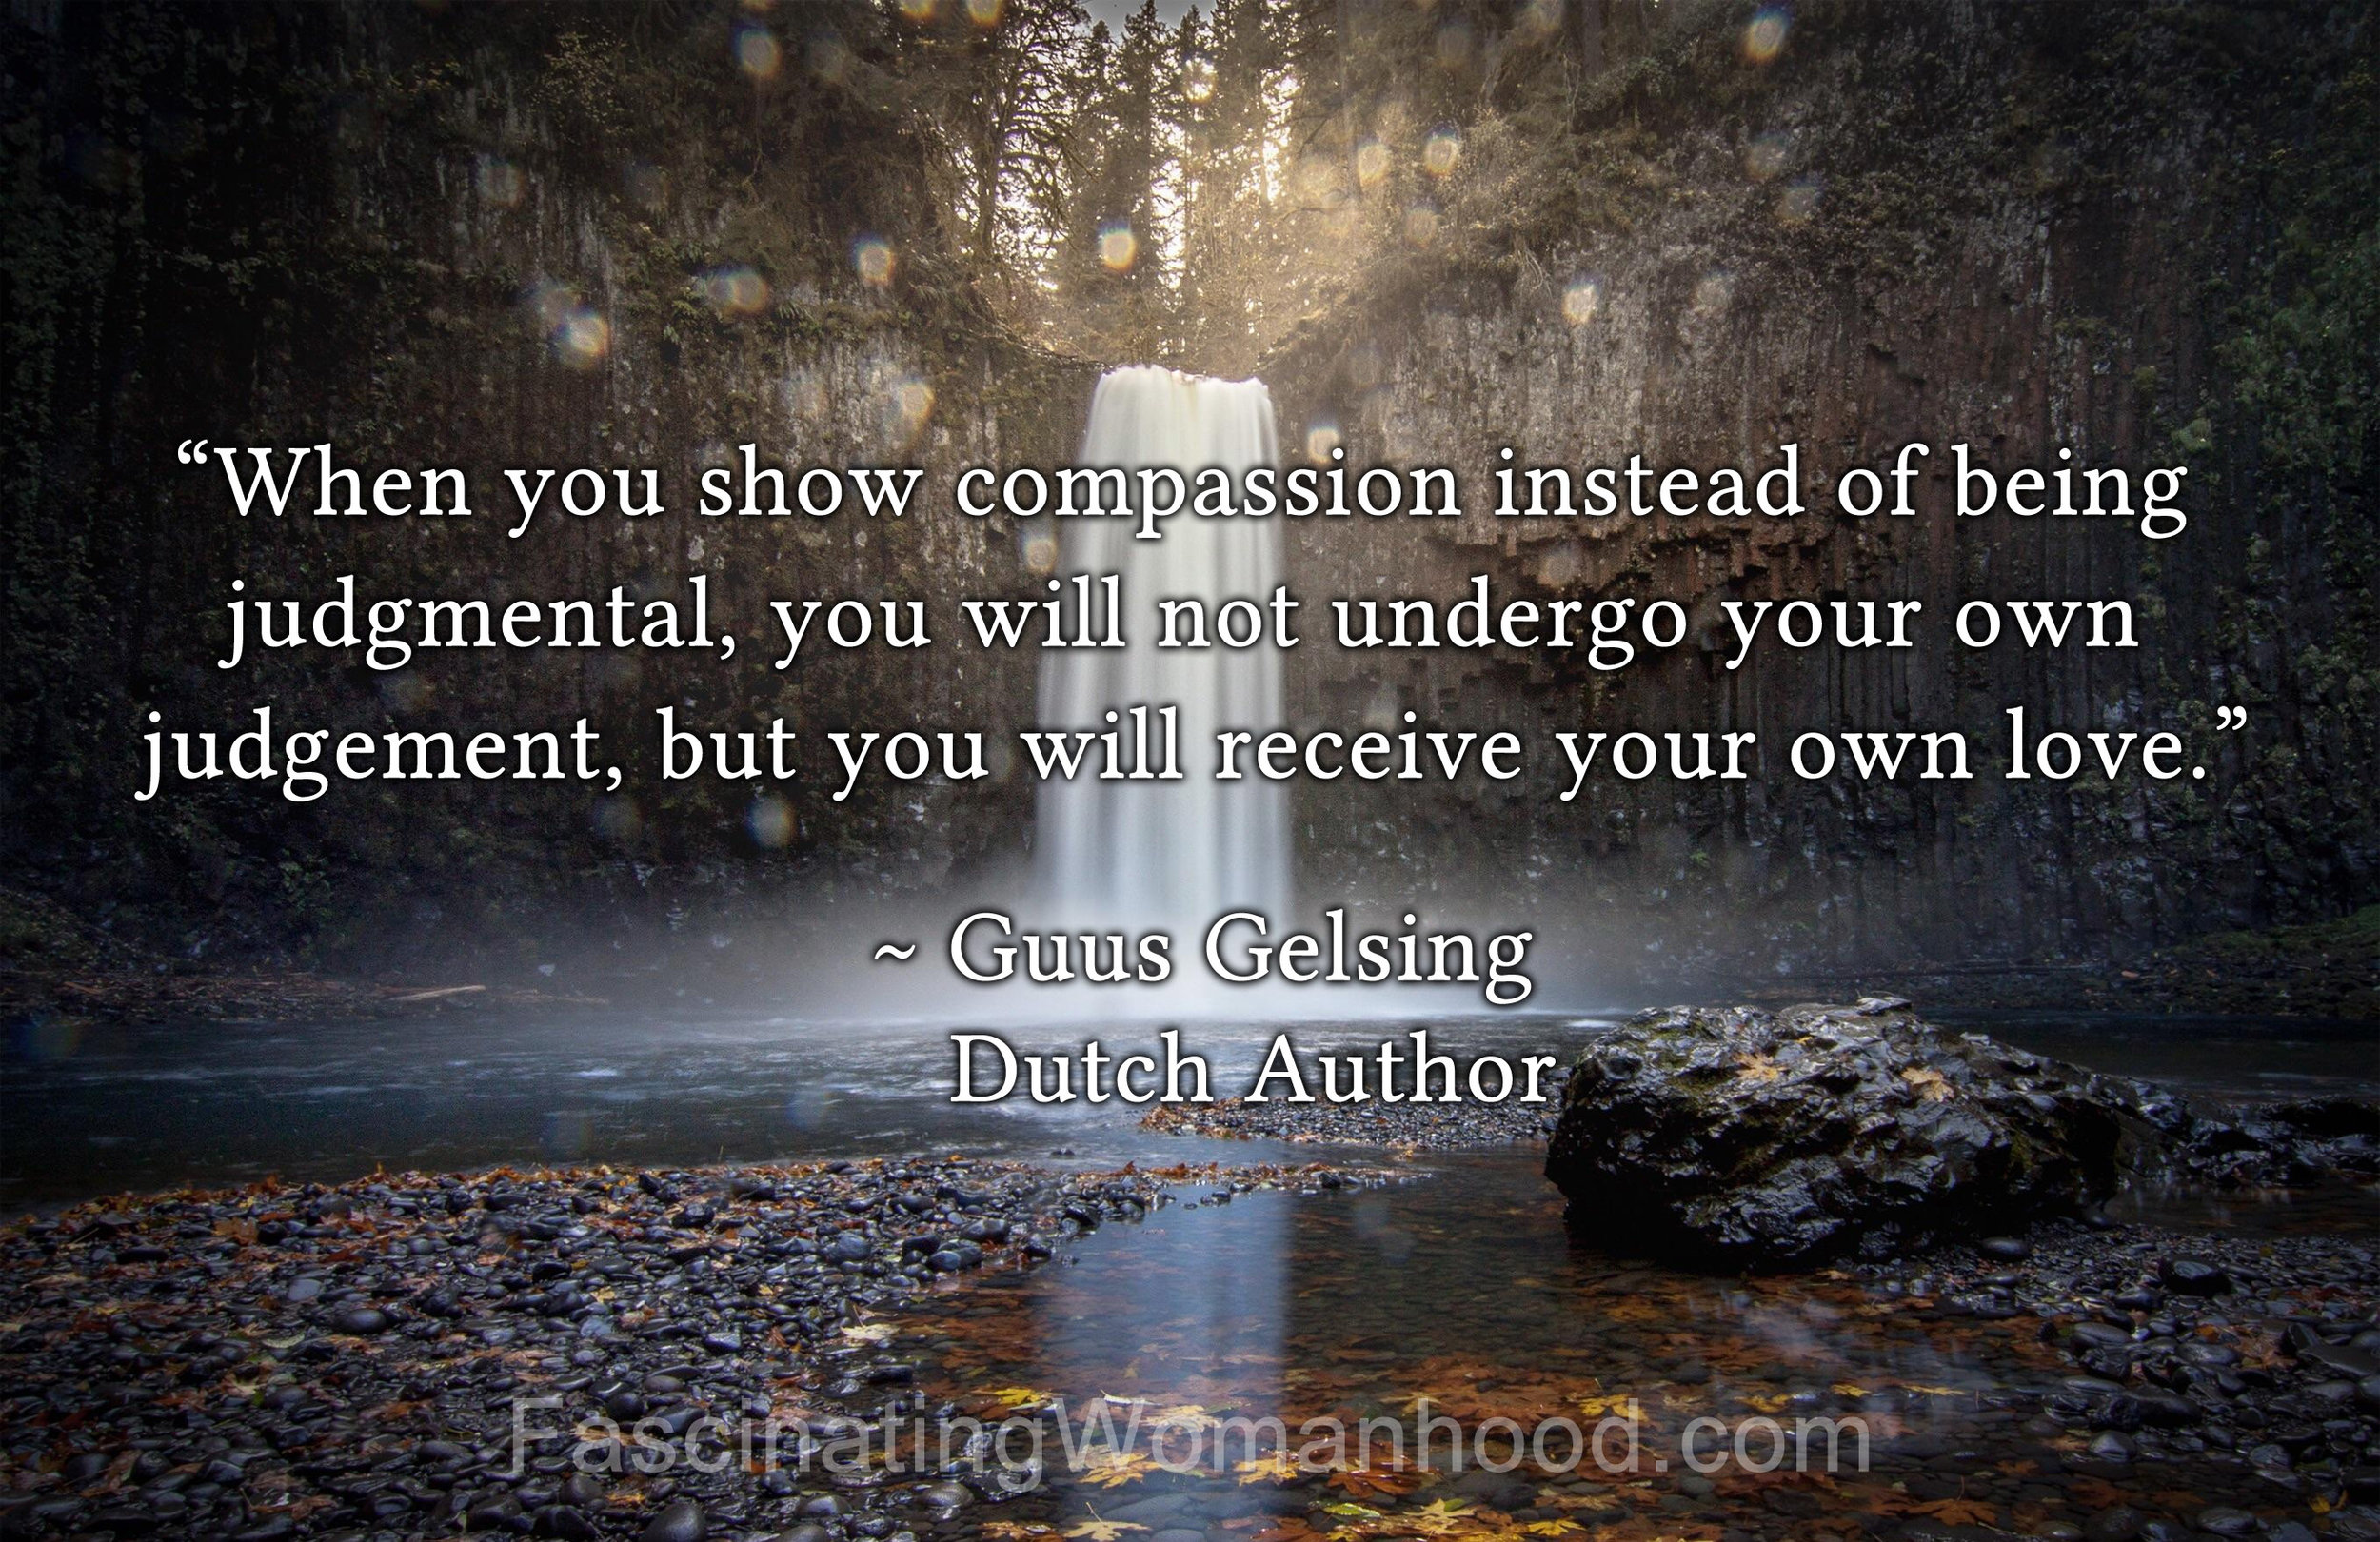 A Quote by Guus Gelsing.jpg